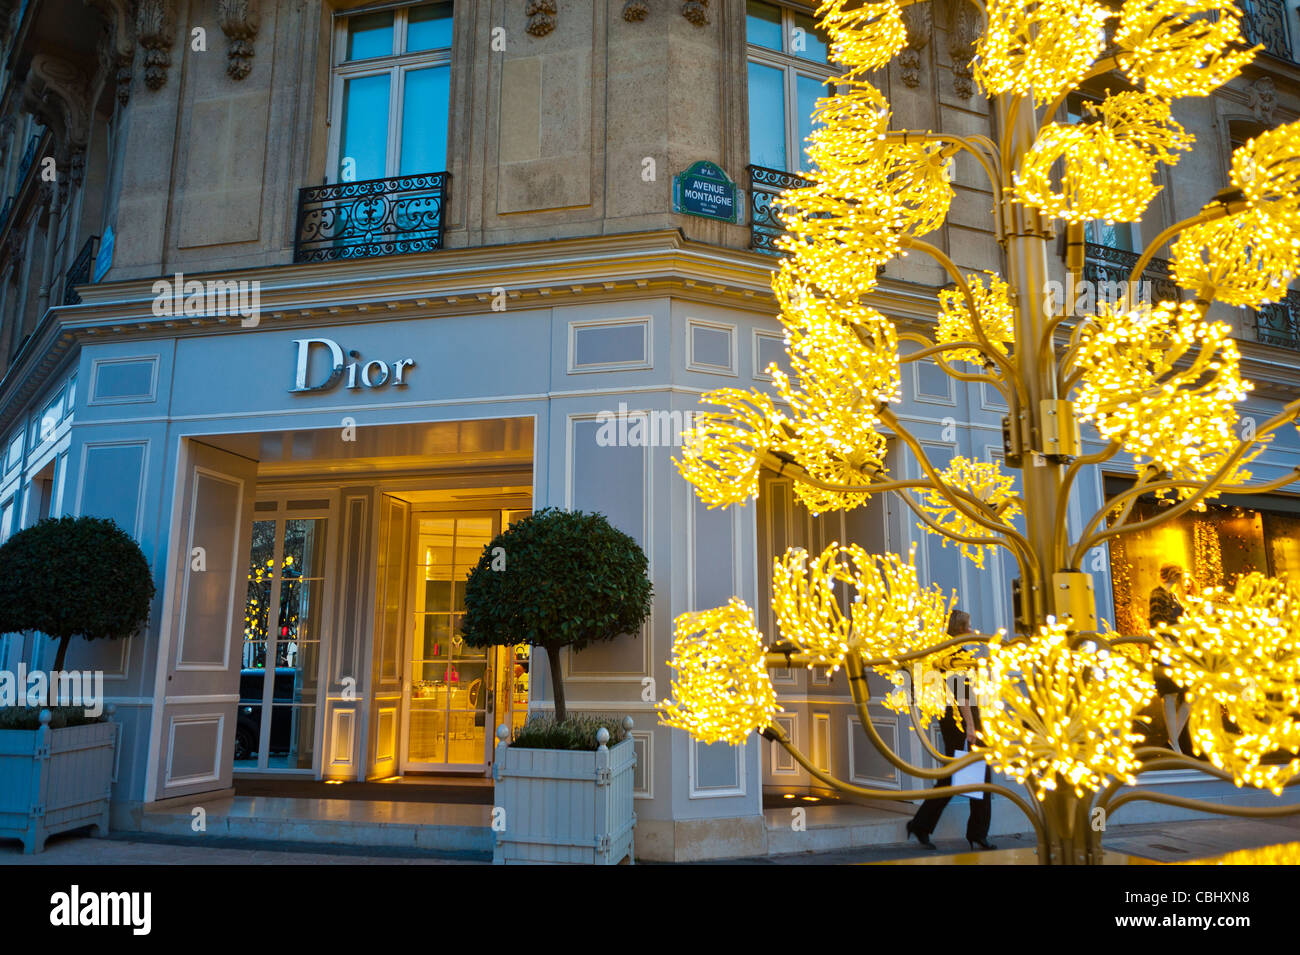 paris france luxury christmas shopping dior store entrance with led christmas lights tree decorations on street - Christmas Lights Store